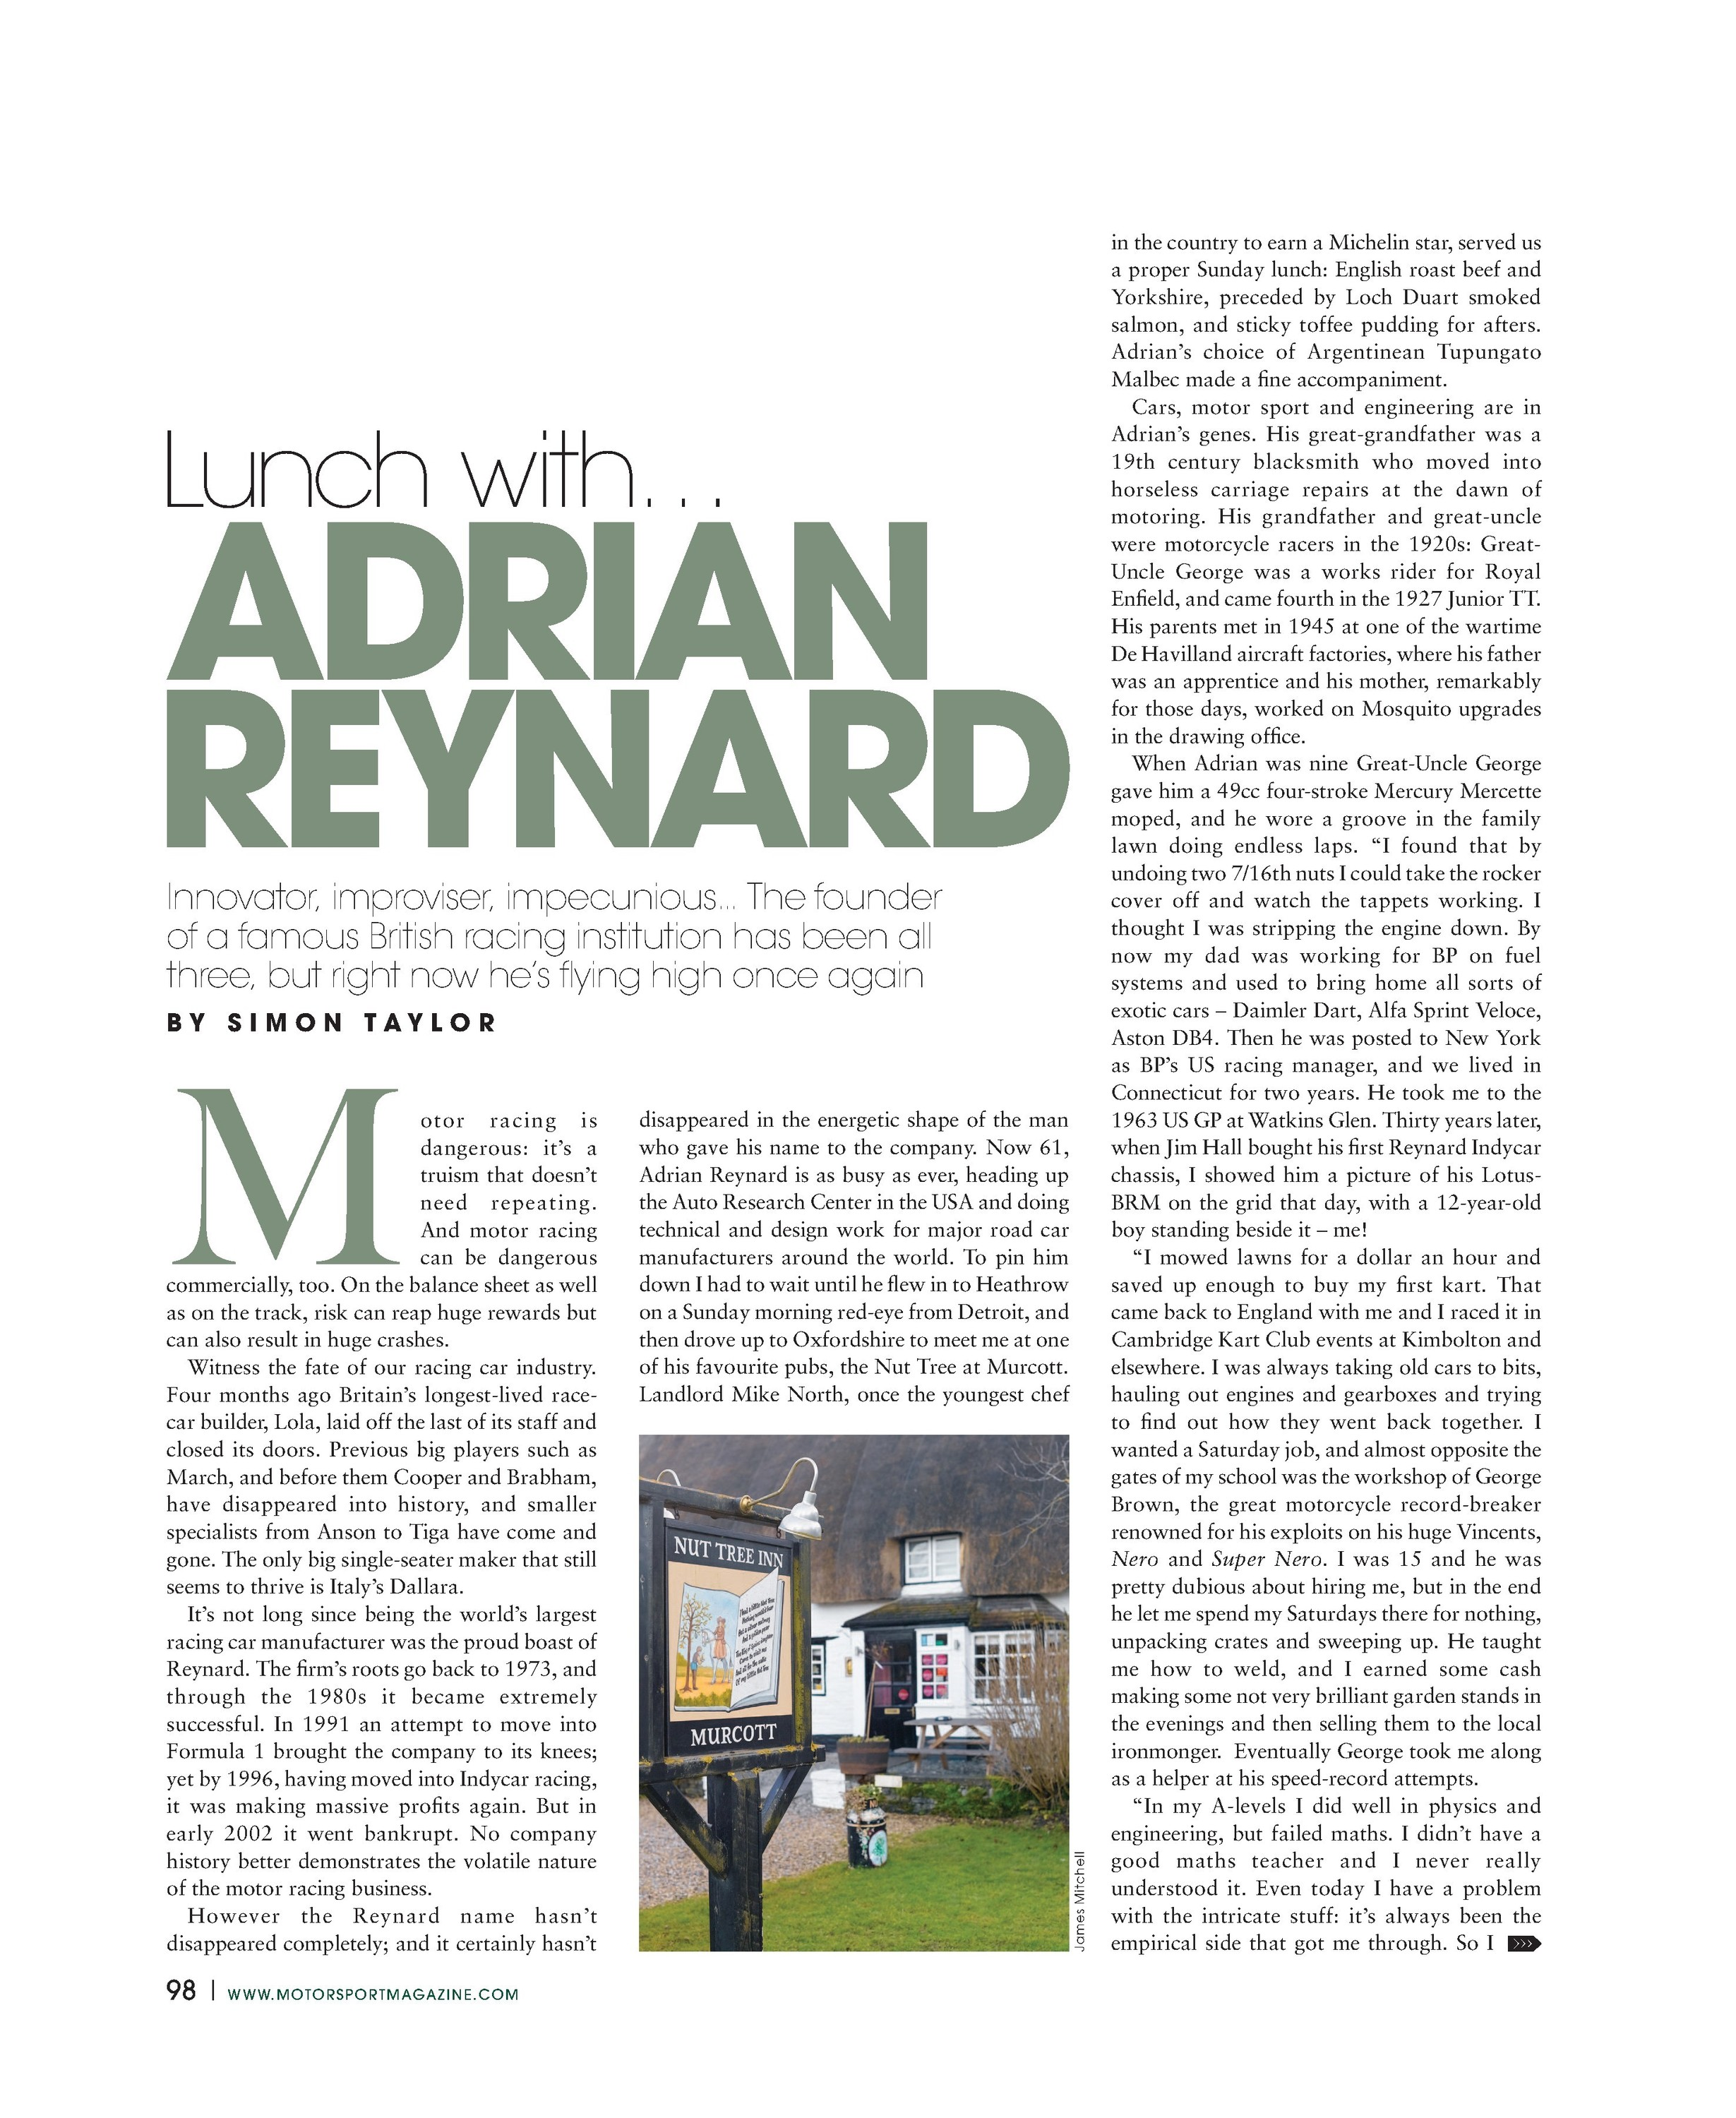 Lunch with... Adrian Reynard image